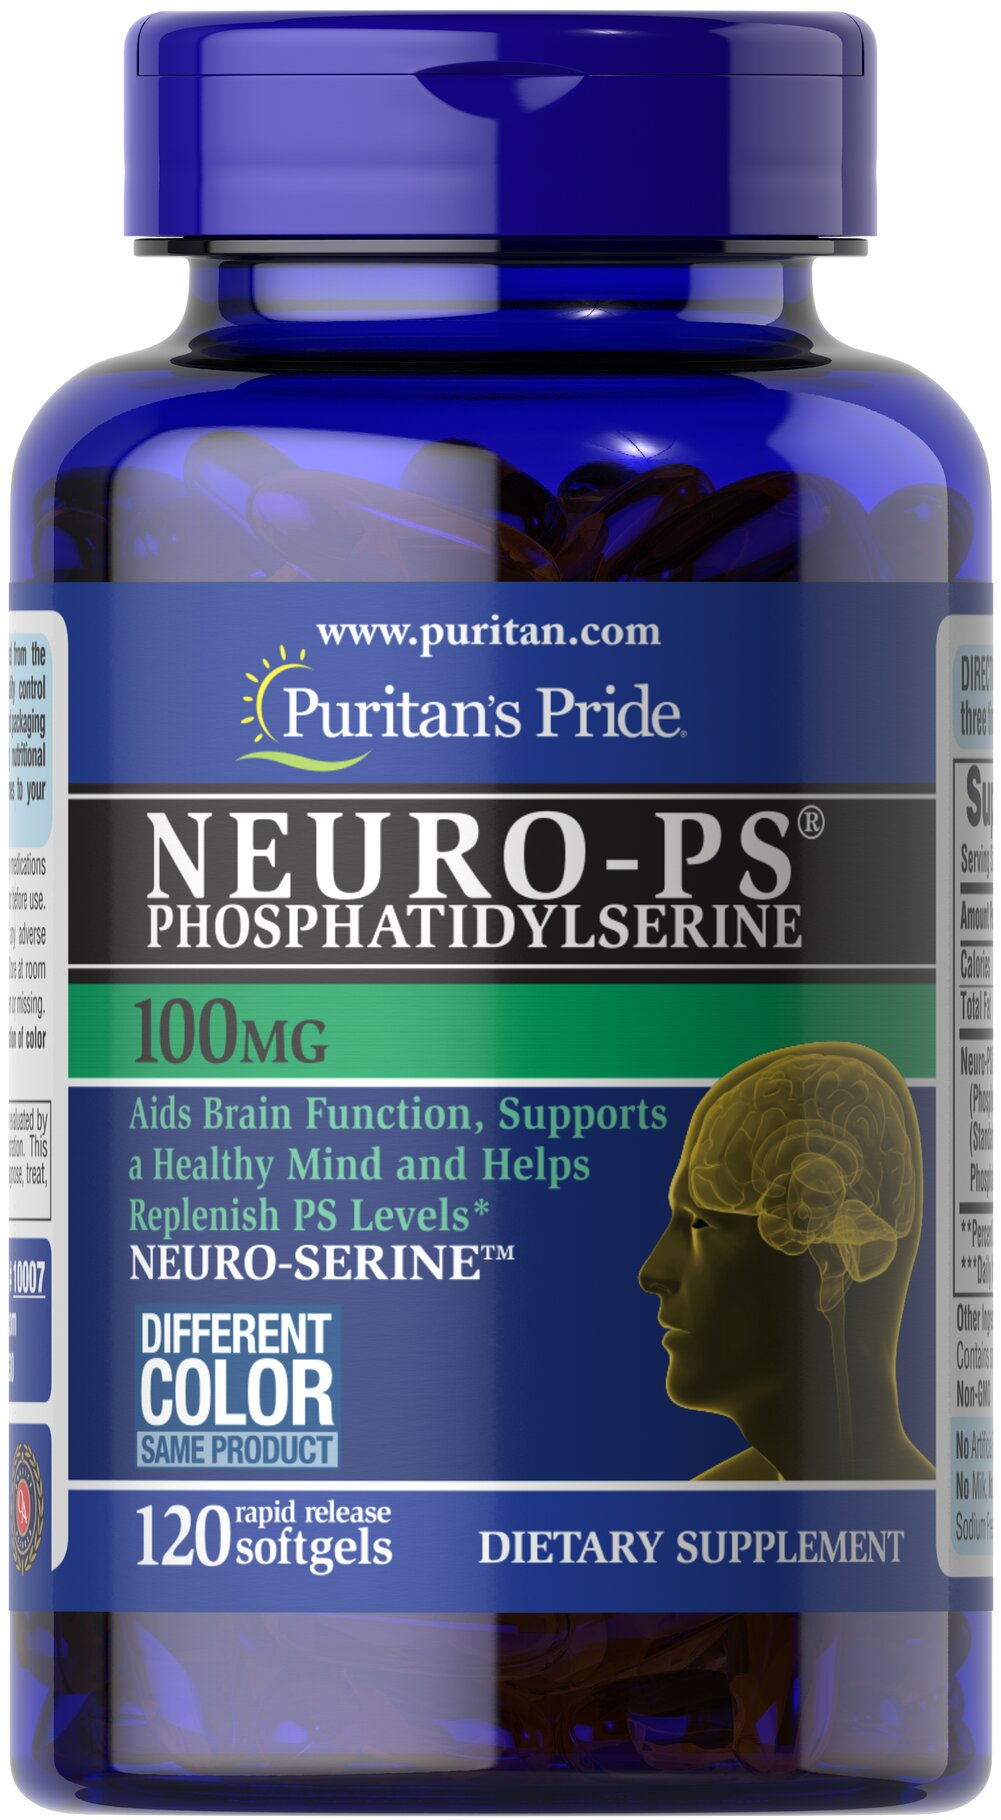 Neuro-Ps (Phosphatidylserine) 100 mg  120 Softgels 100 mg $64.49